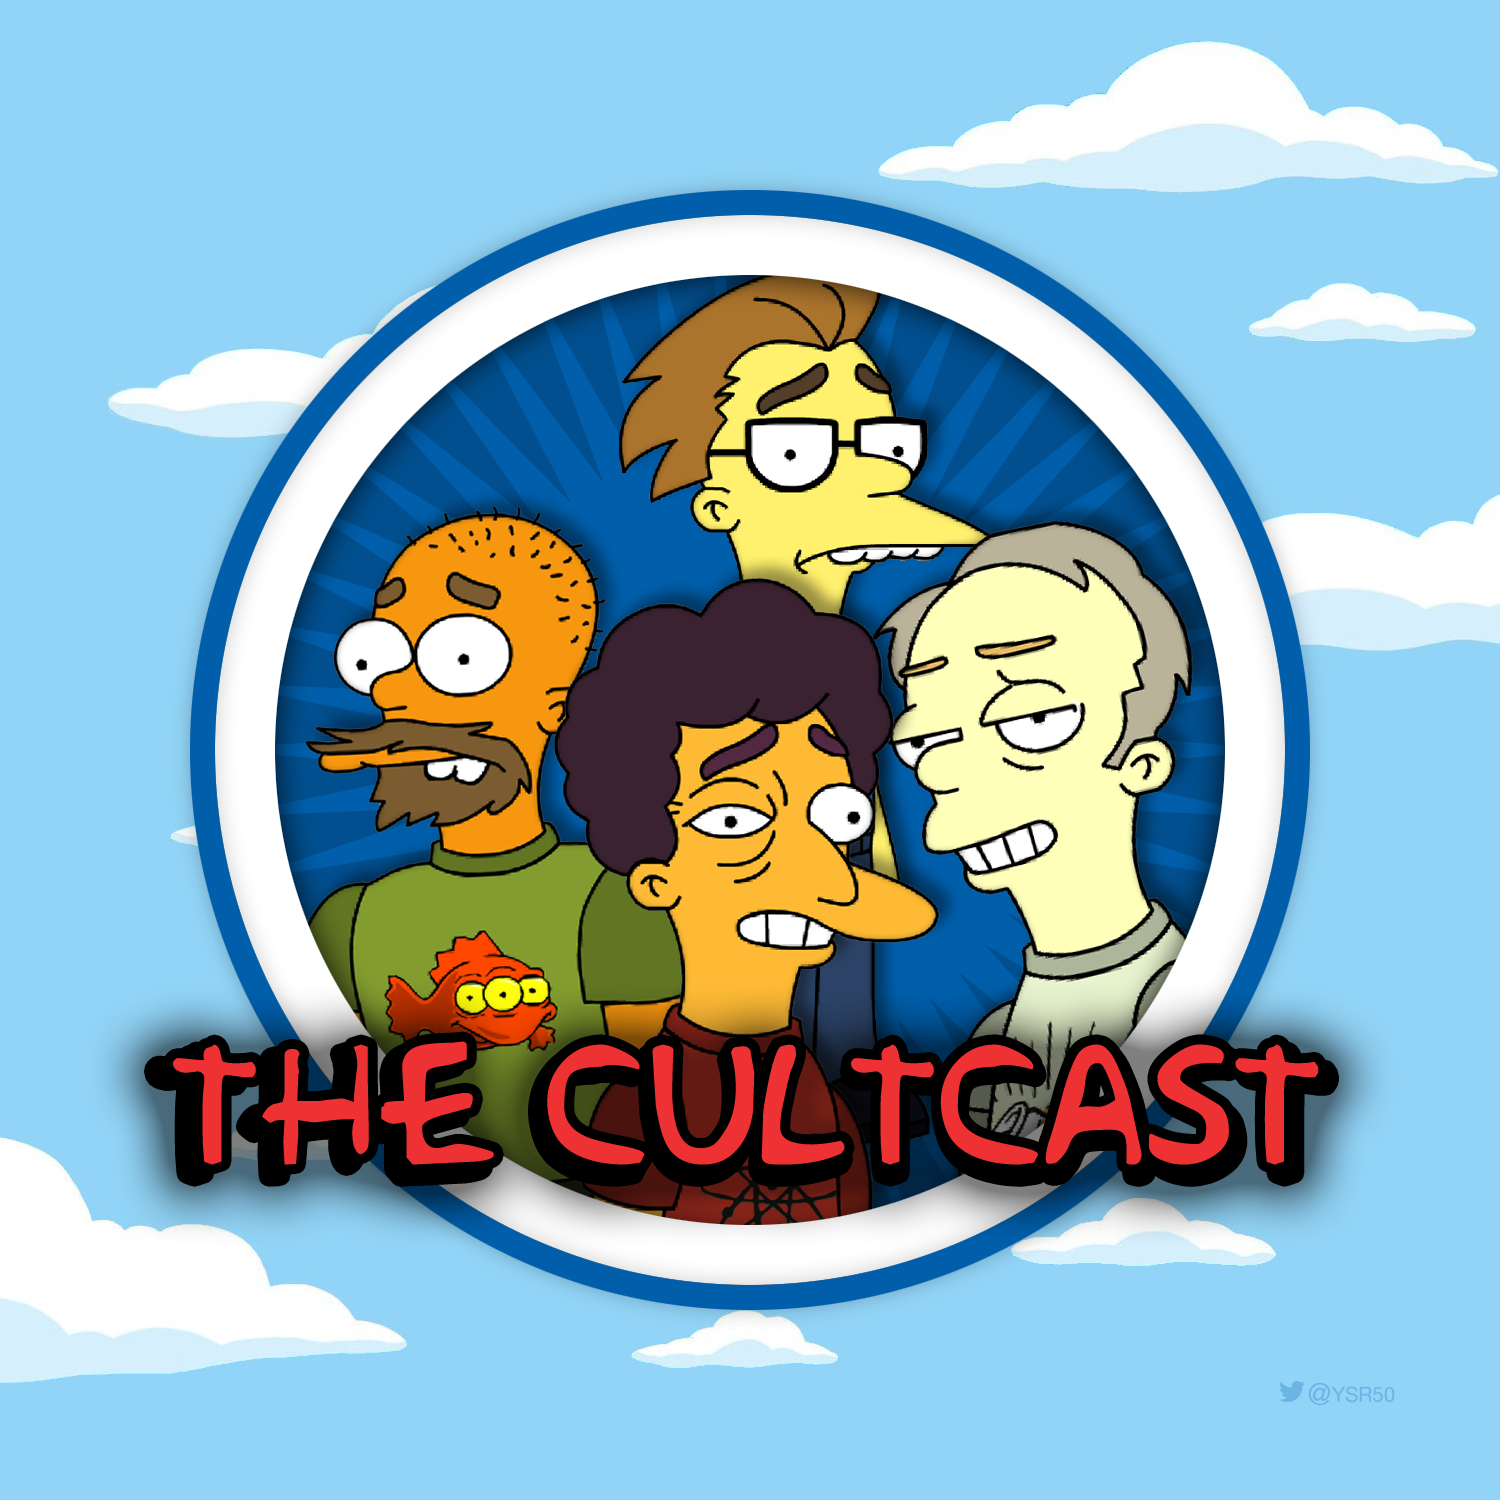 2021330a1d10c1 The CultCast by The CultCast! on Apple Podcasts